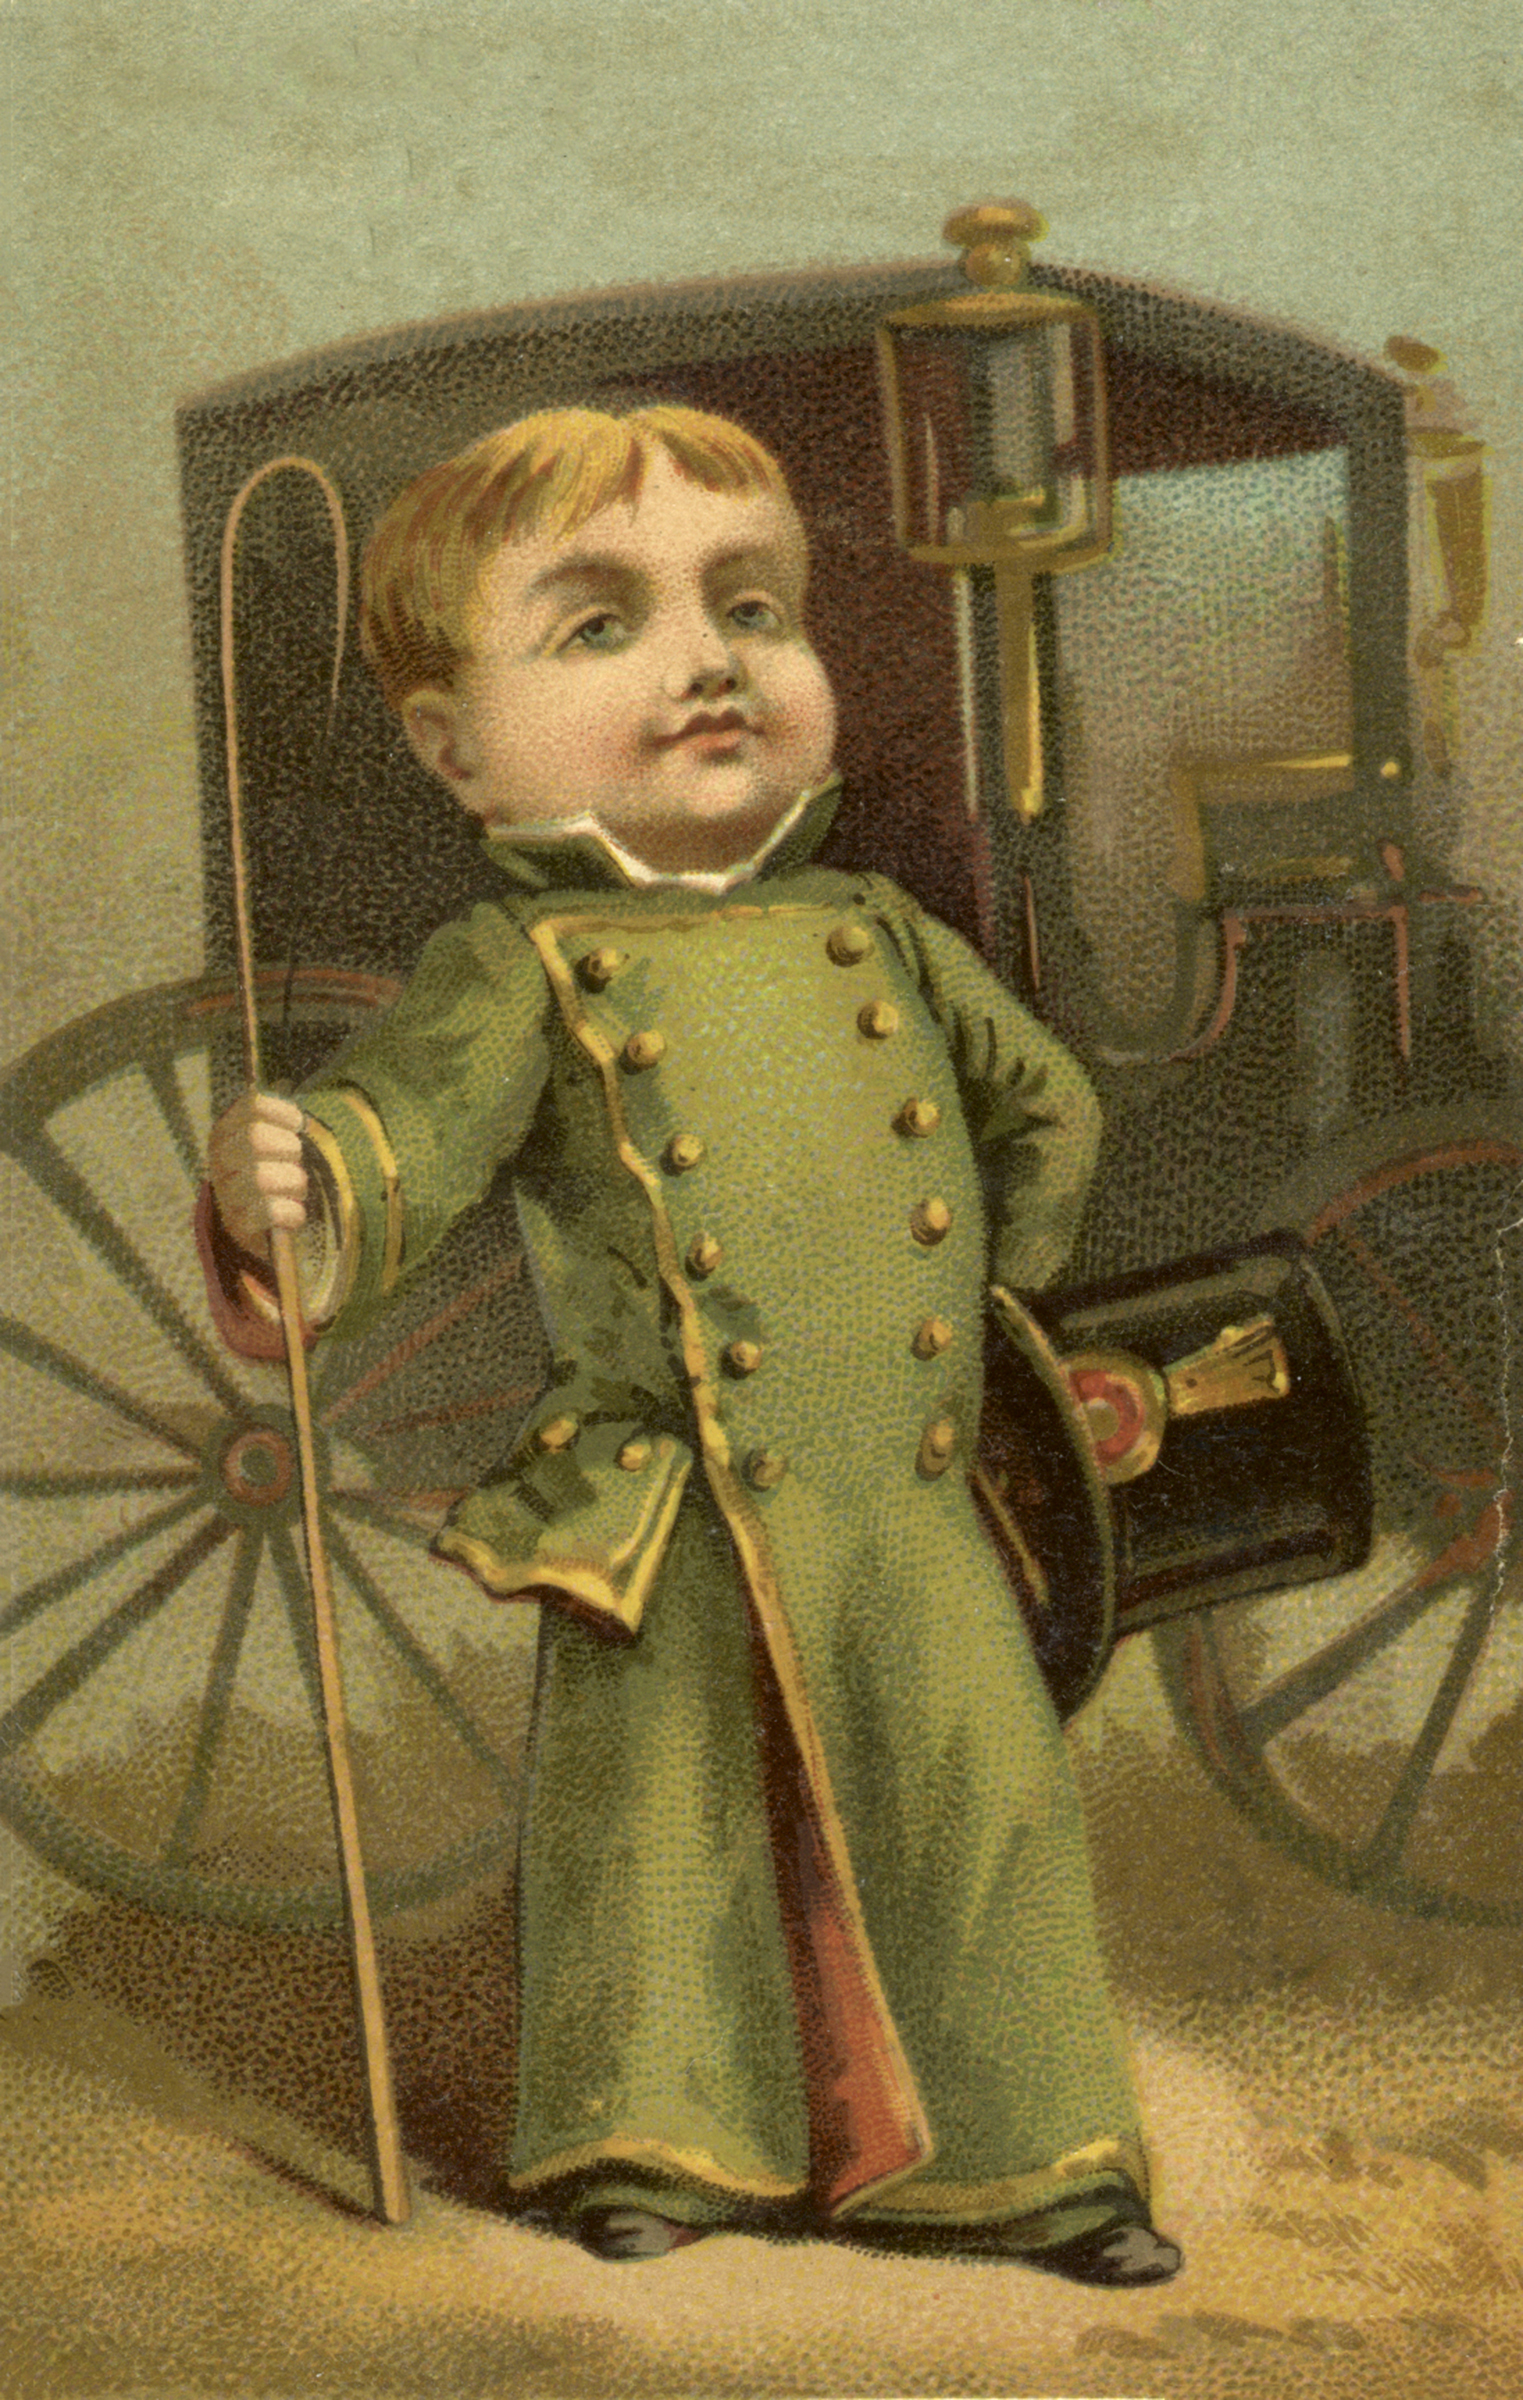 Vintage Boy With Carriage Image